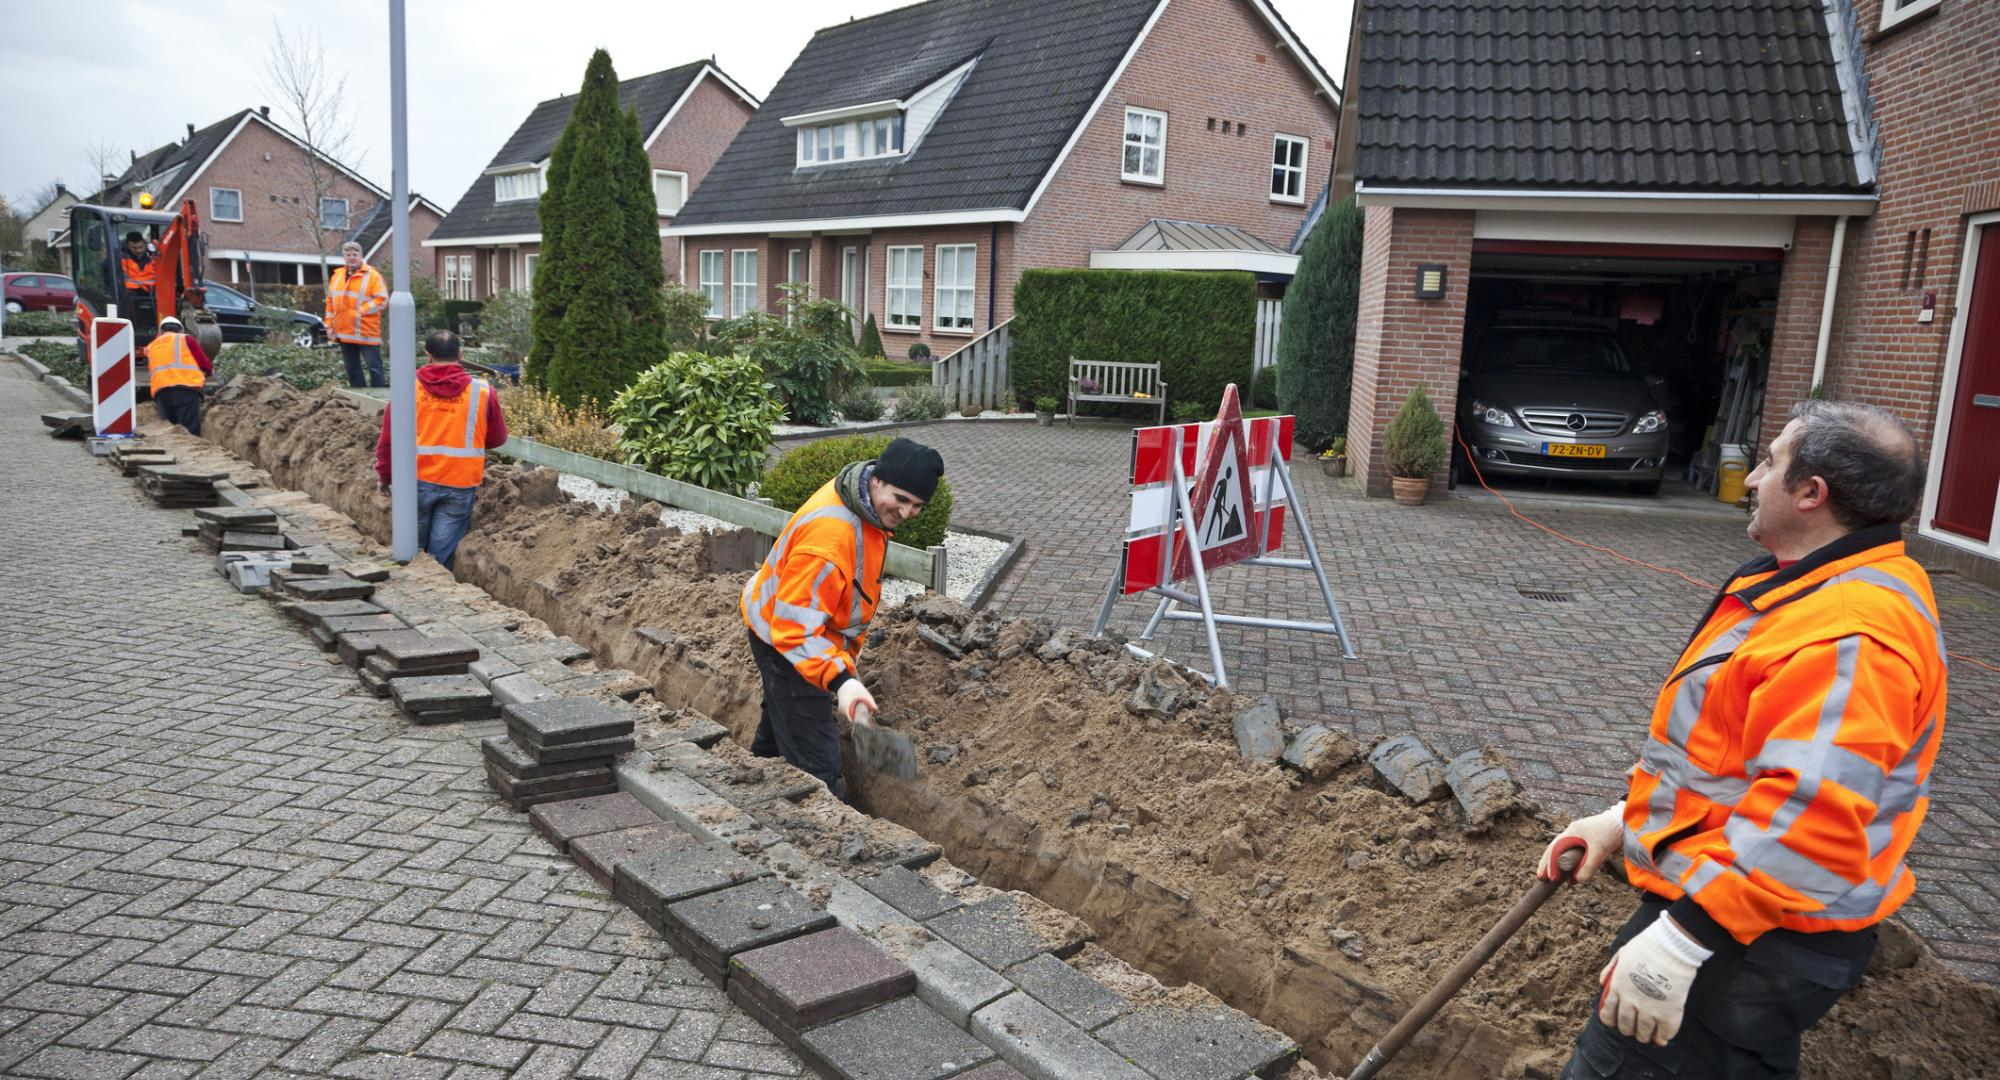 Workmen bring up pavement to lay fibre optic cables.